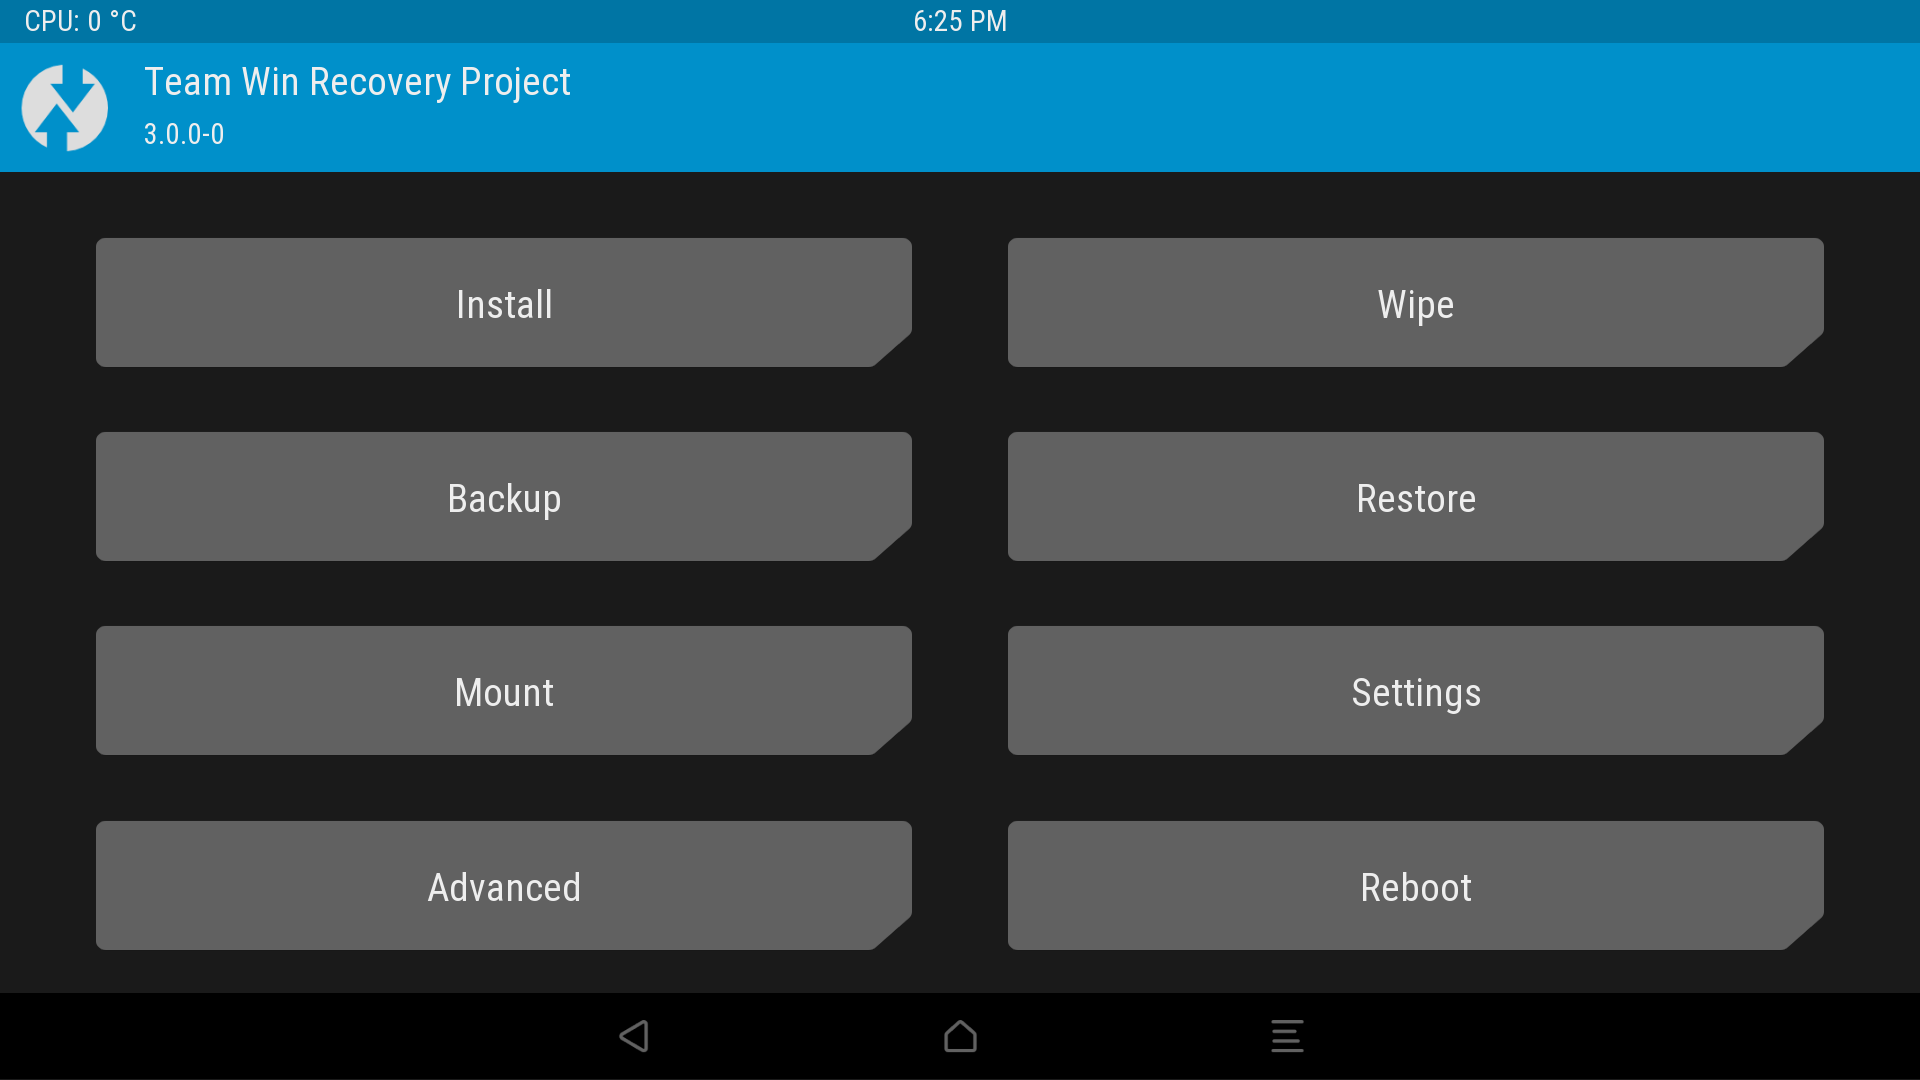 How to Install TWRP Recovery on Galaxy Tab A6 LTE T285 - Android